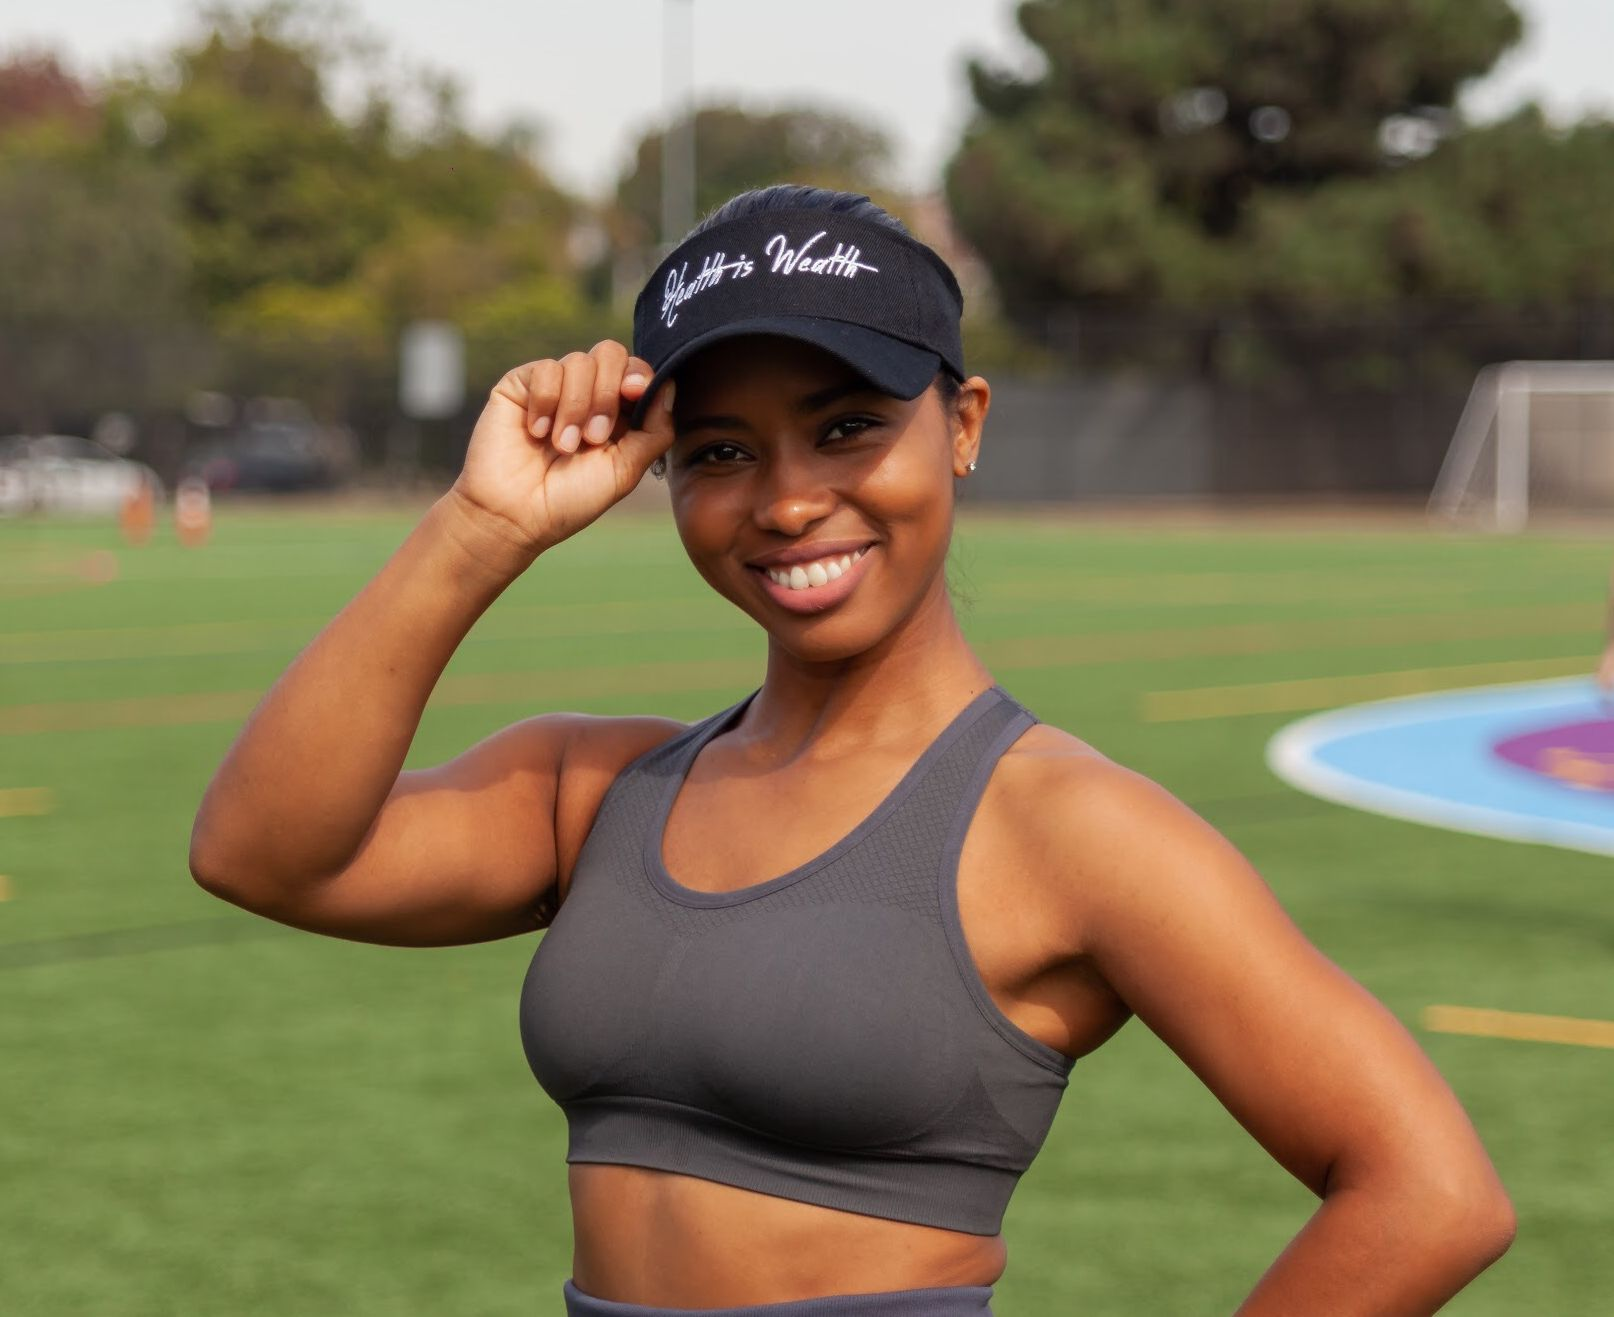 health is wealth - Activewear & fitness with a whole lot of <3